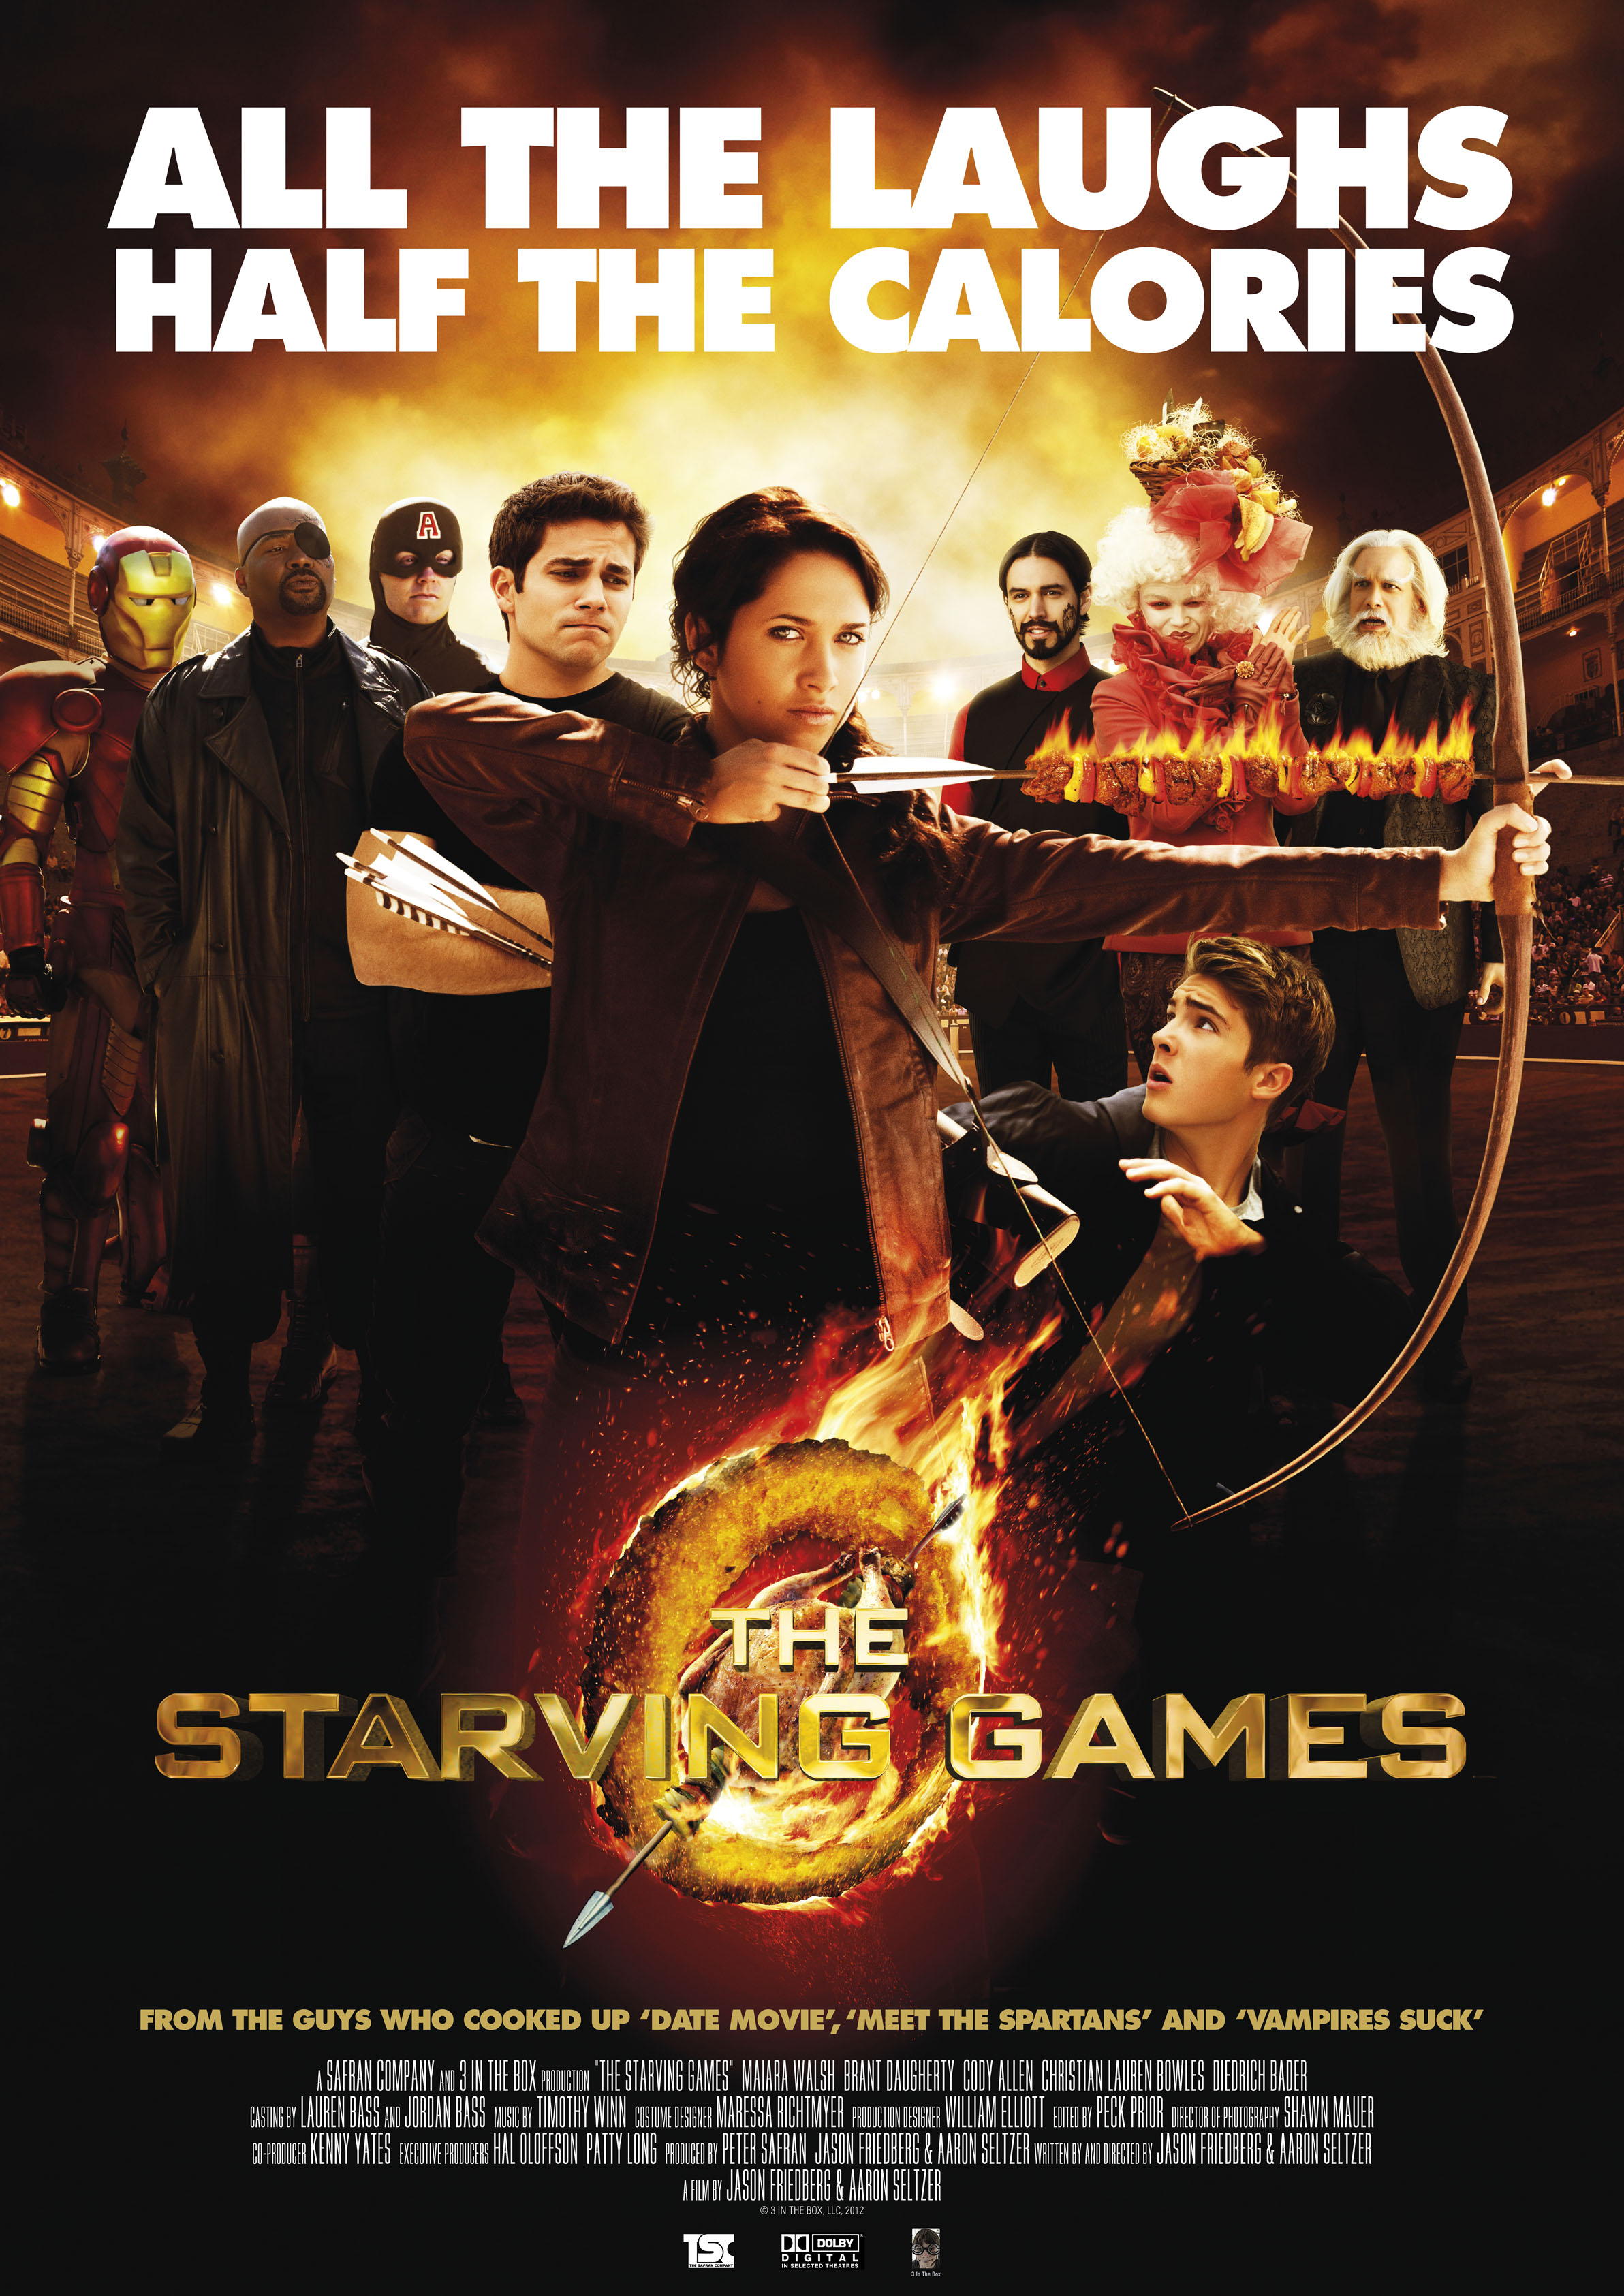 The Starving Games 2013 Imdb